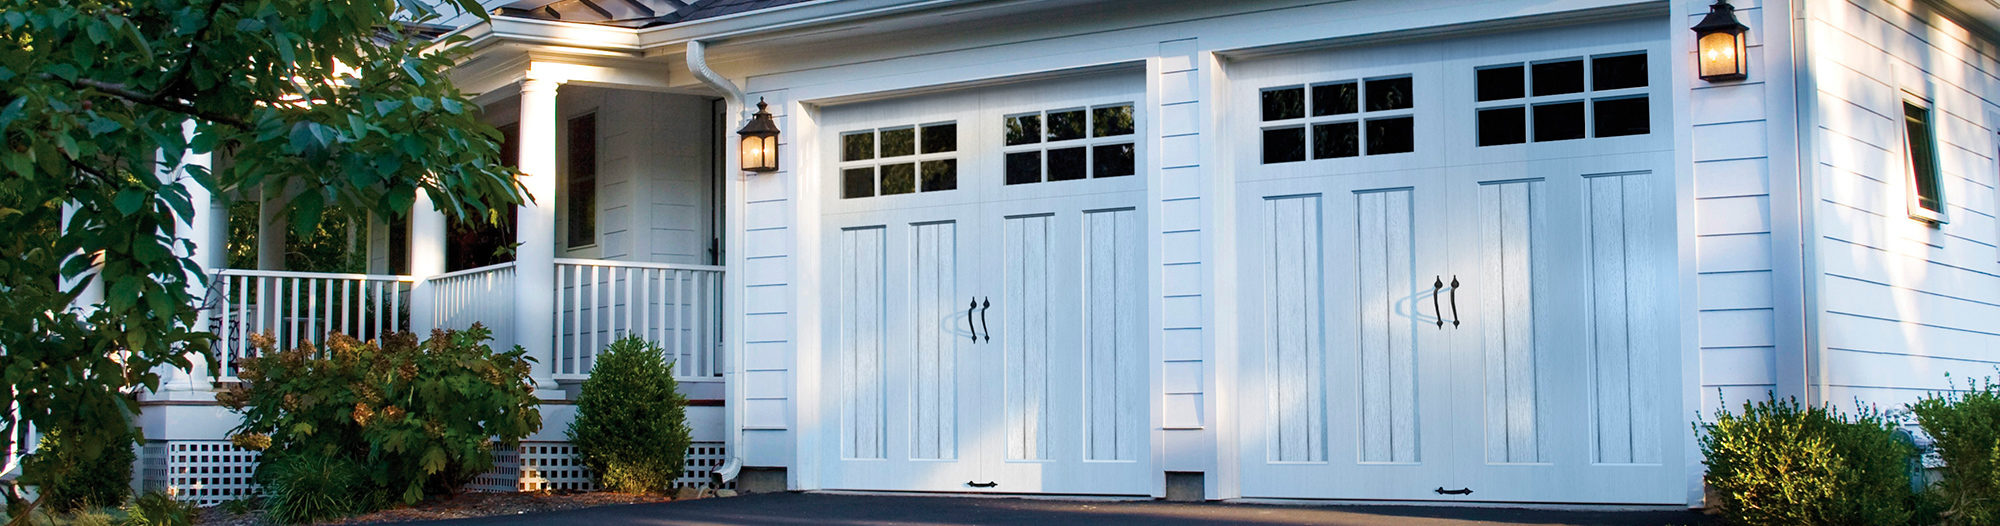 Veteran-Inspired, Christian-Based, Garage Door Service